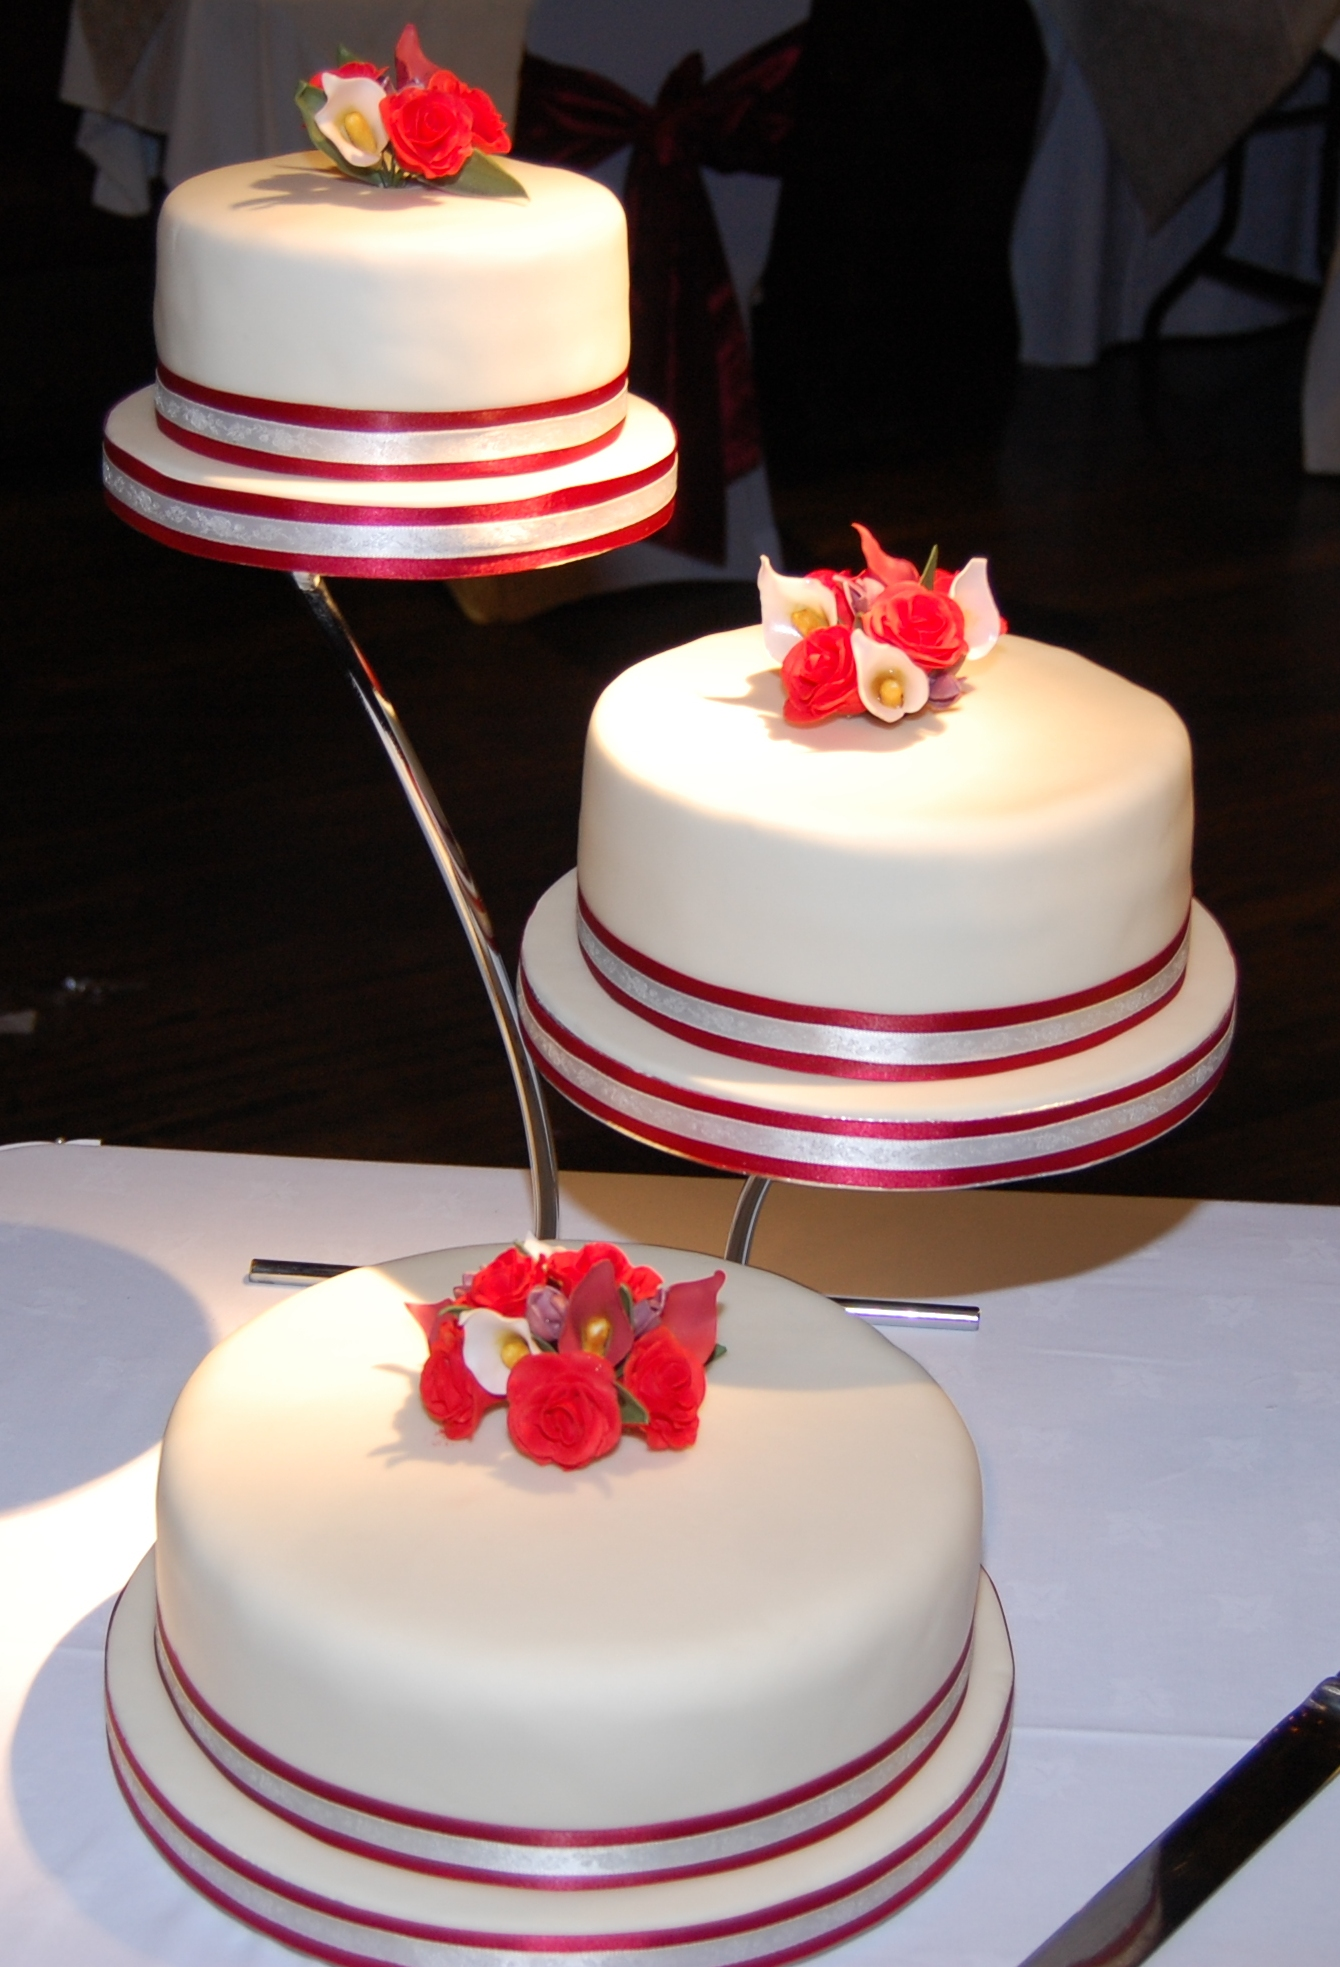 3 Tier Wedding Cake With Roses And Calla Lilies Hours Of Fun - 3 Tier Wedding Cakes